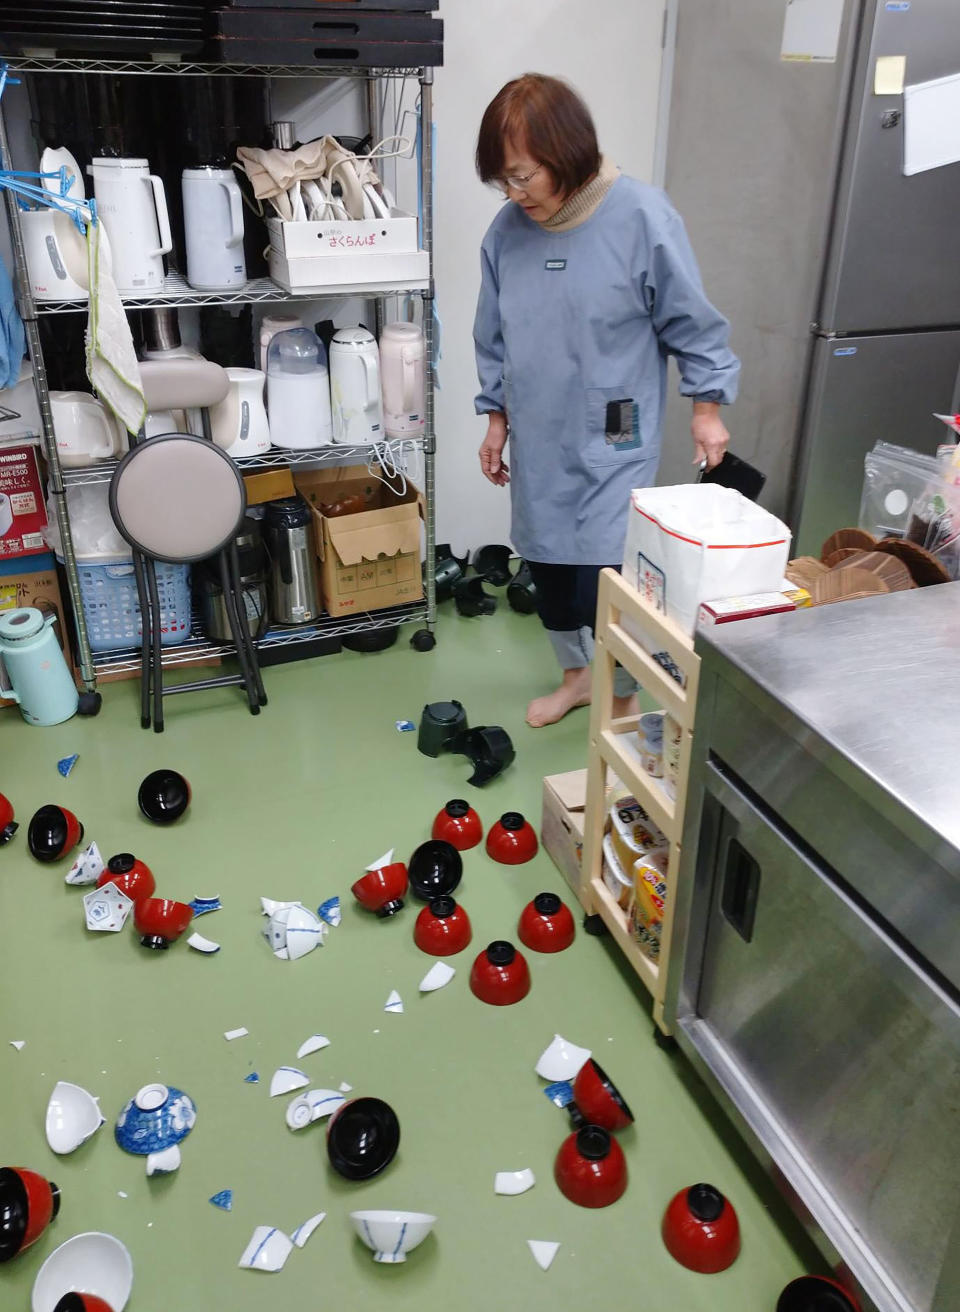 A landlady of a Japanese style hotel stands near damaged bowls following an earthquake in Minamisoma, Fukushima prefecture, northeastern Japan Saturday, Feb. 13, 2021. The Japan Meteorological Agency says a strong earthquake has hit off the coast of northeastern Japan, shaking Fukushima, Miyagi and other areas. (Tomomi Miura/Kyodo News via AP)